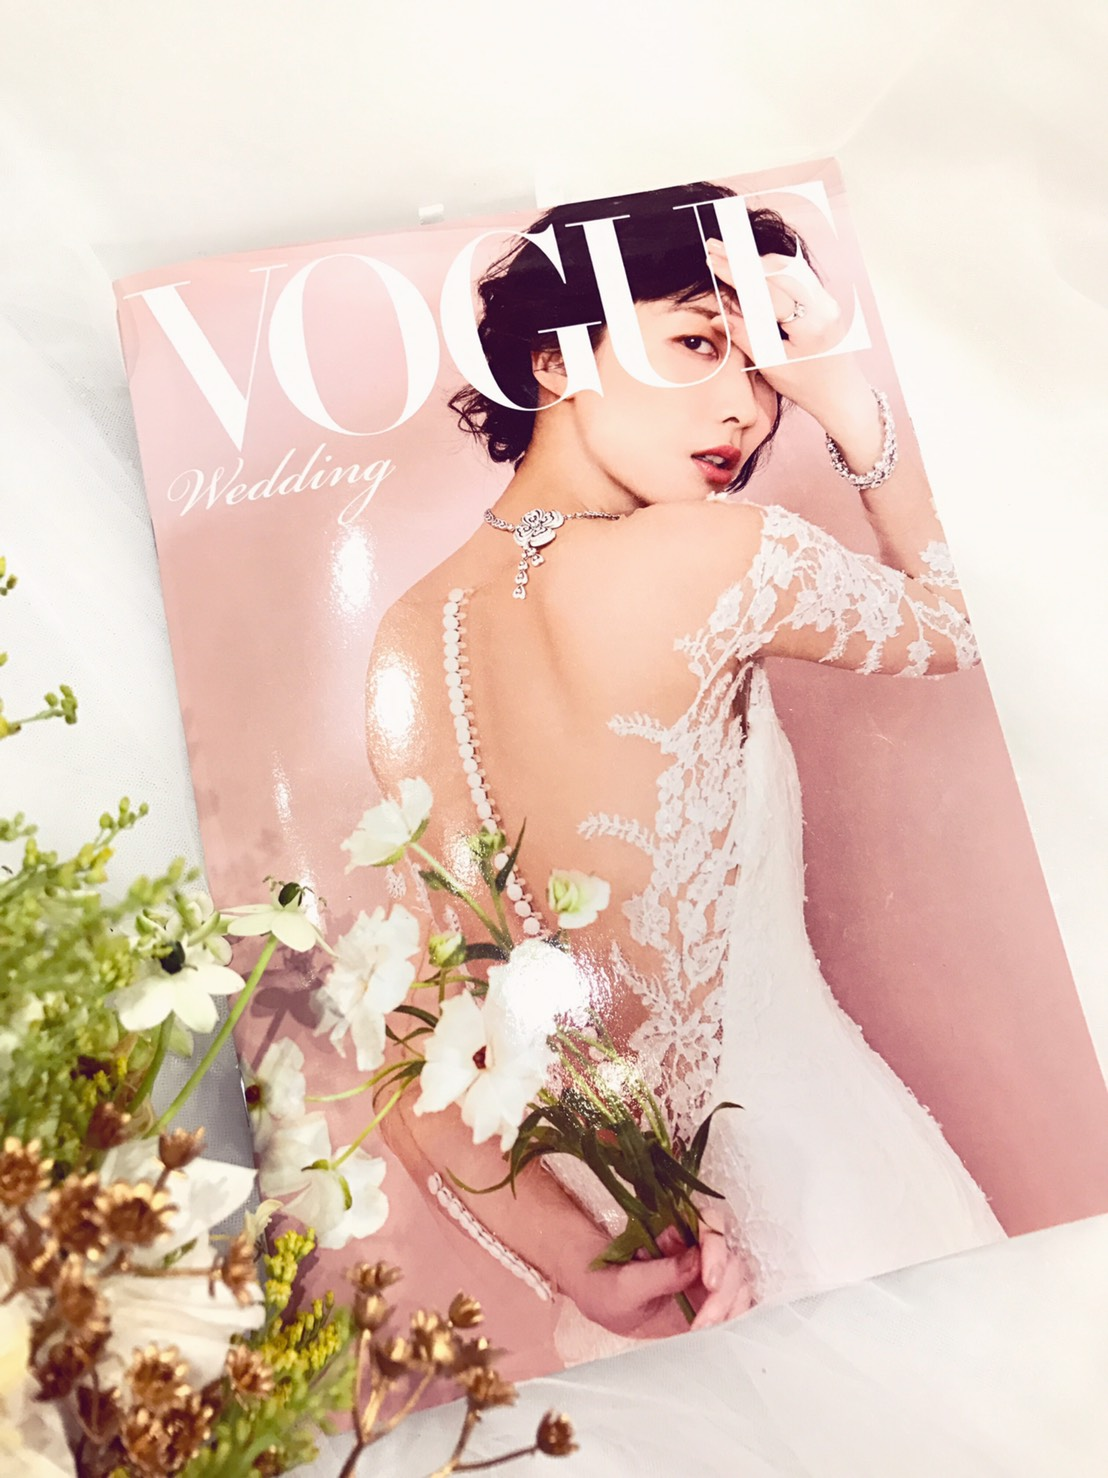 vogue wedding 2018 cover